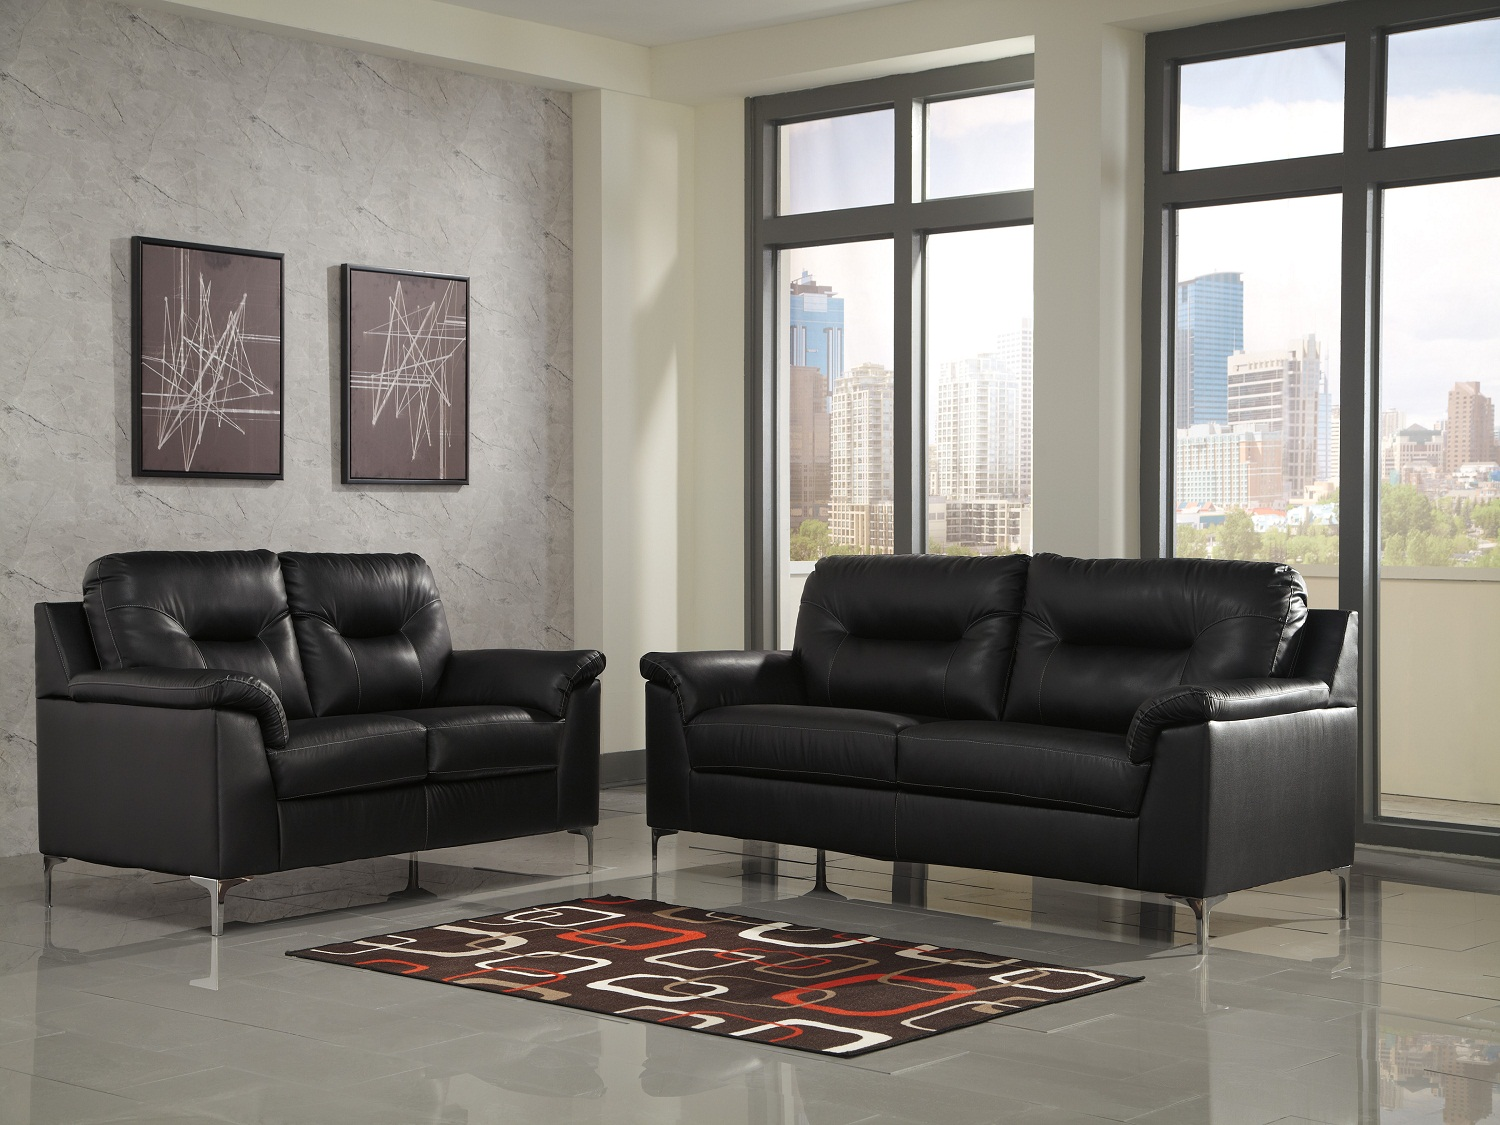 Tensas Sofa Only, 39604, Sofa Sets by Midha Furniture to Brampton, Mississauga, Etobicoke, Toronto, Scraborough, Caledon, Oakville, Markham, Ajax, Pickering, Oshawa, Richmondhill, Kitchener, Hamilton and GTA area